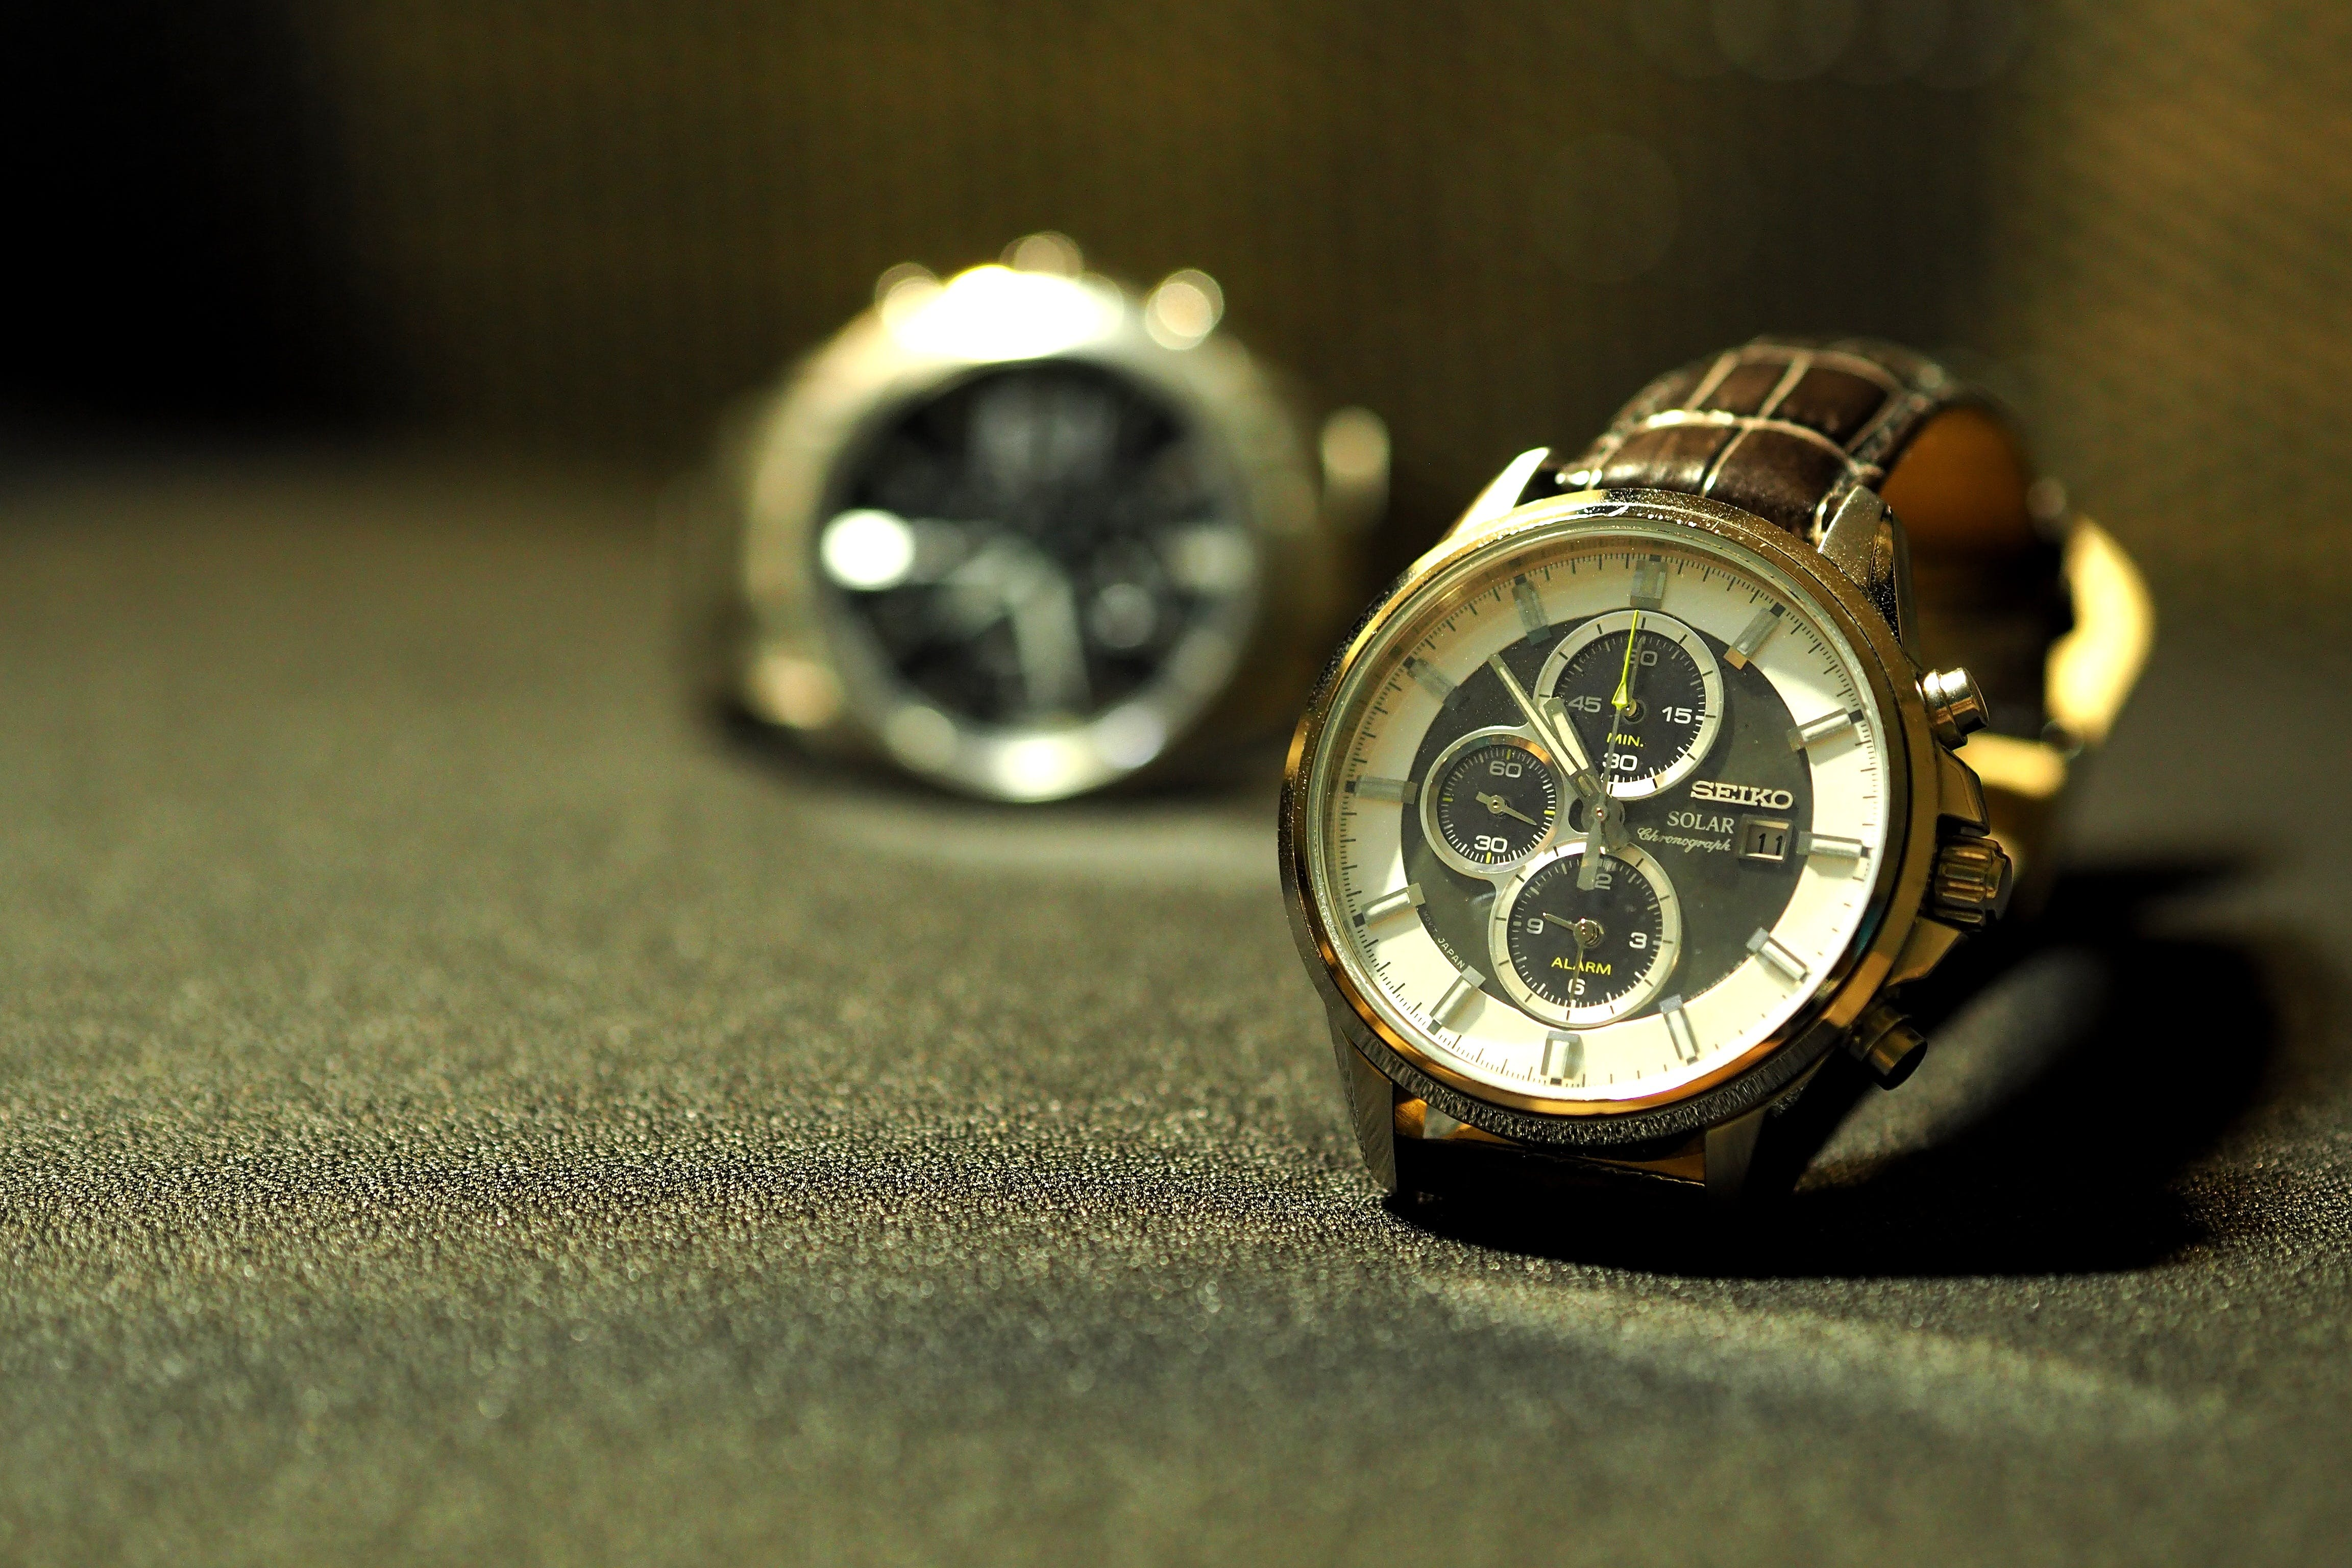 Selective Focus Photography of Round Silver-colored Chronograph Watch With Link Bracelet